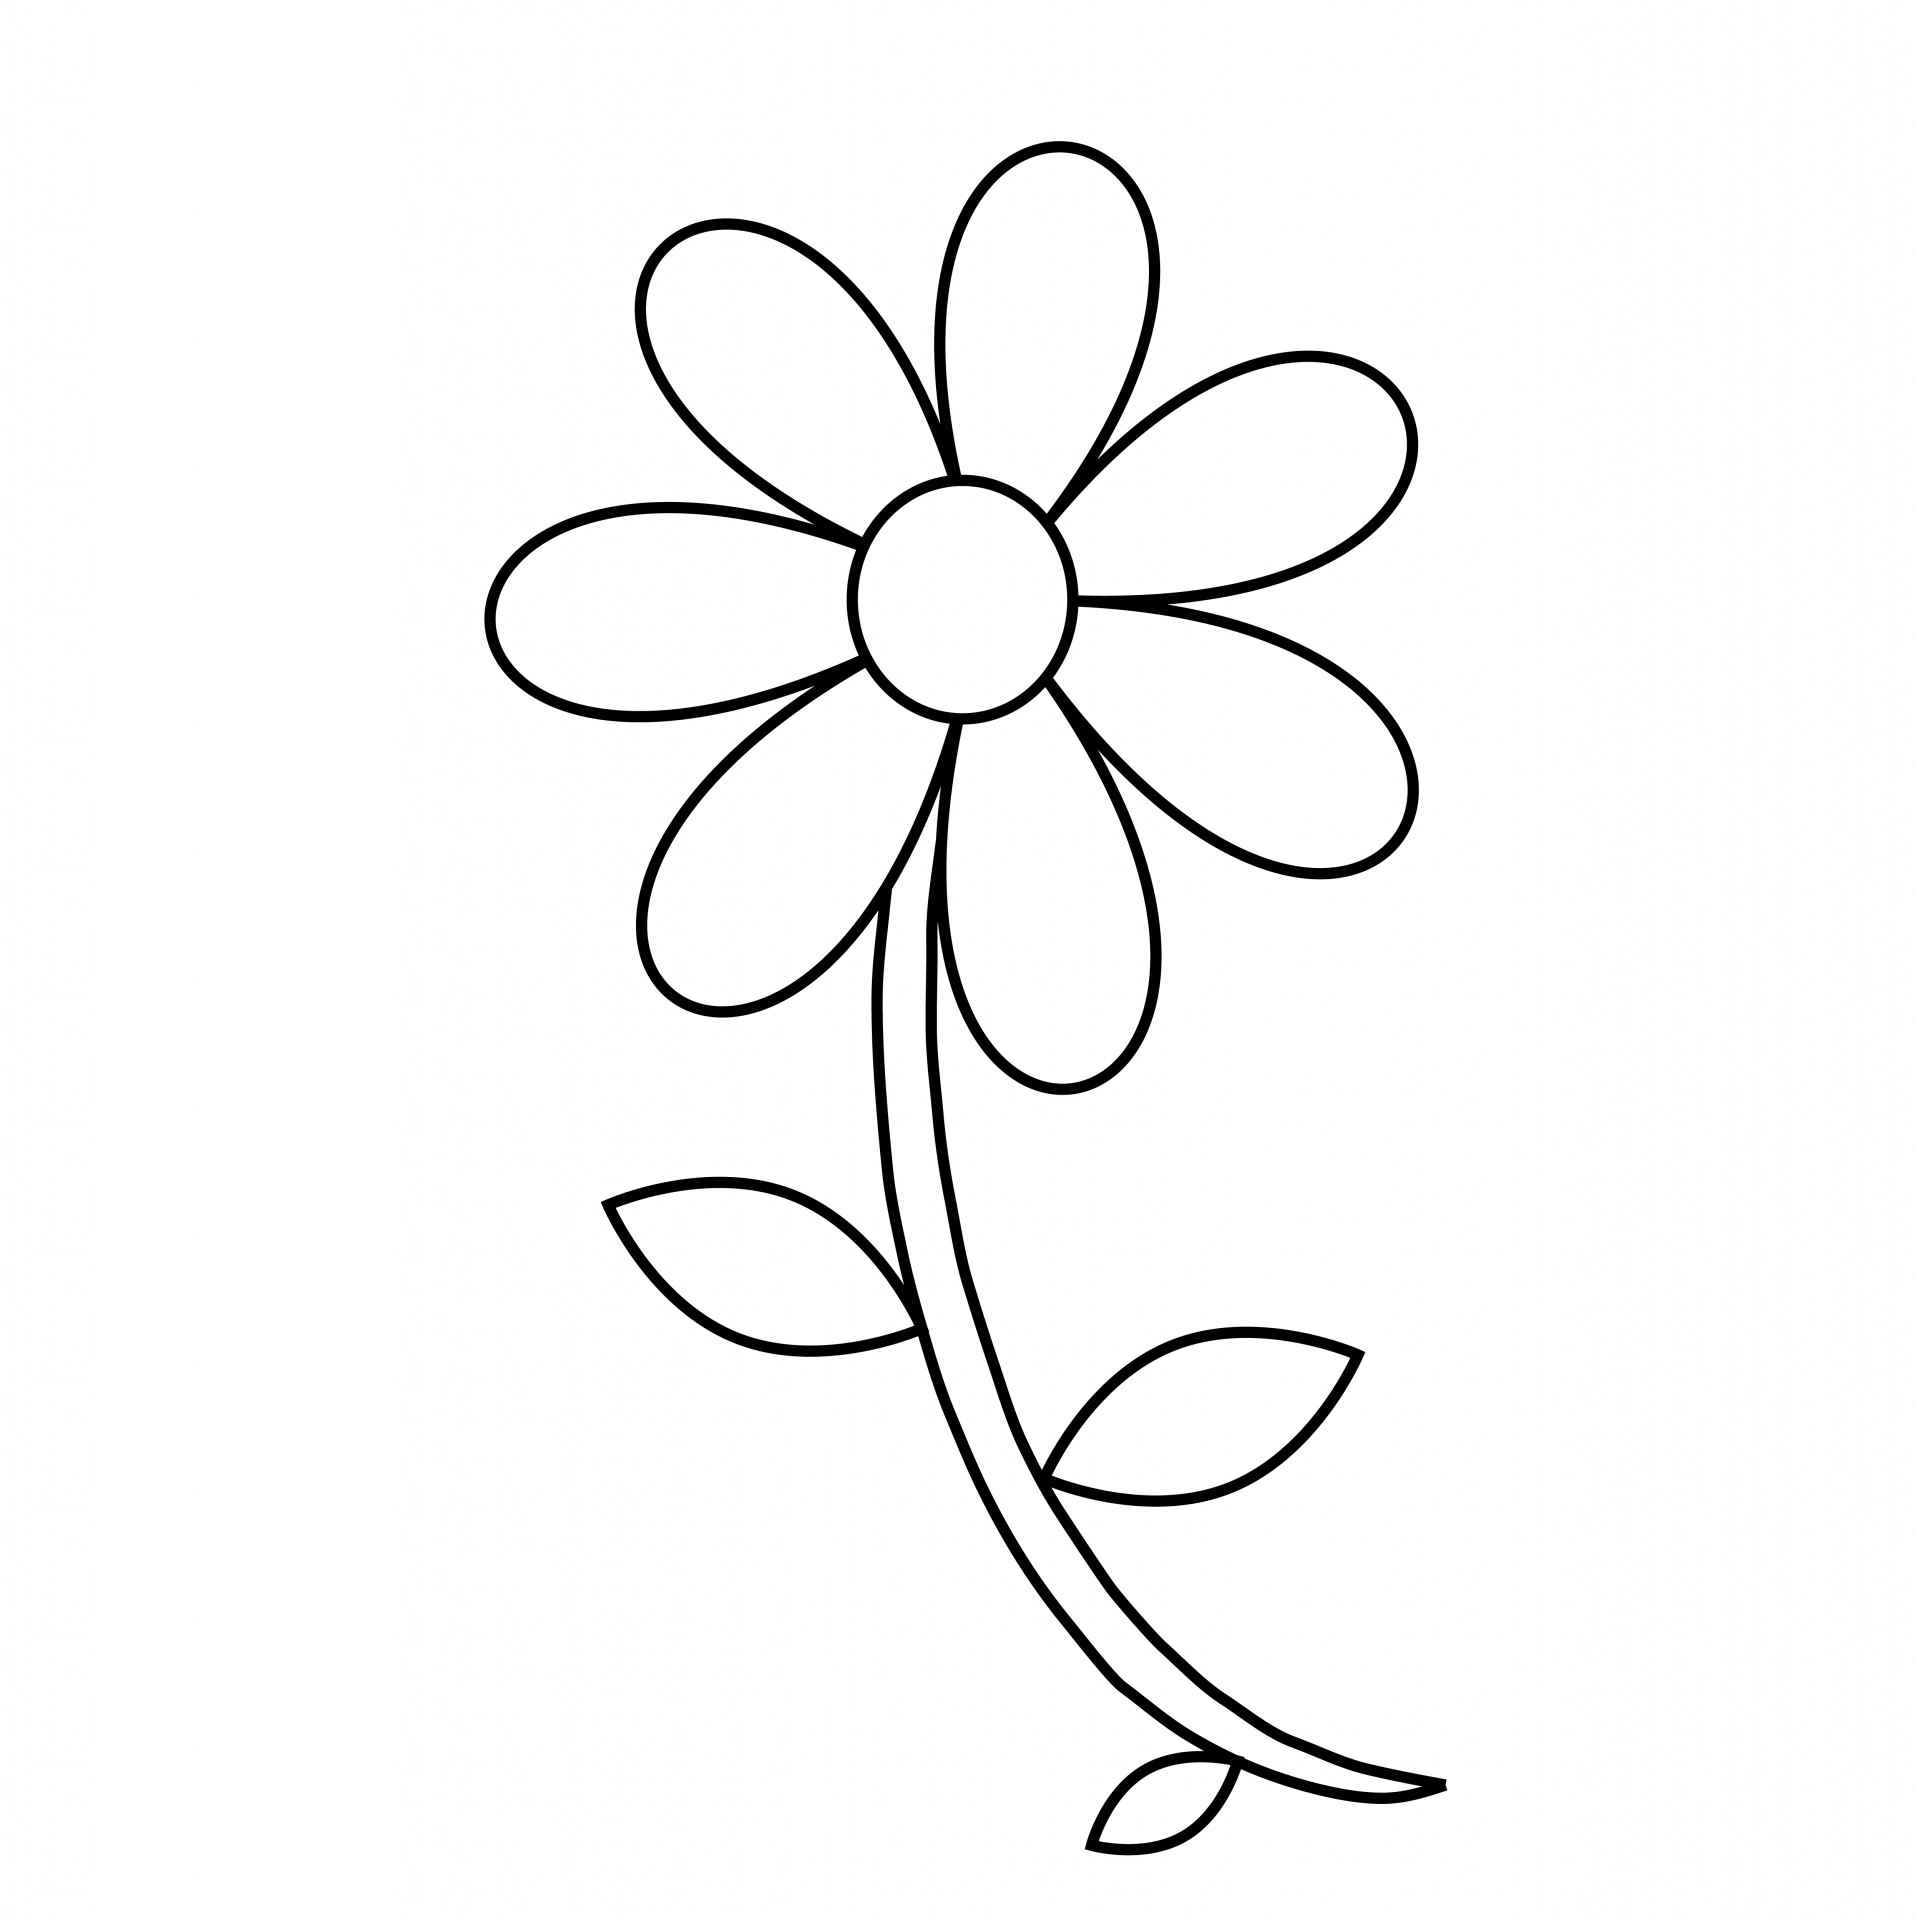 Flower Stems Coloring Pages